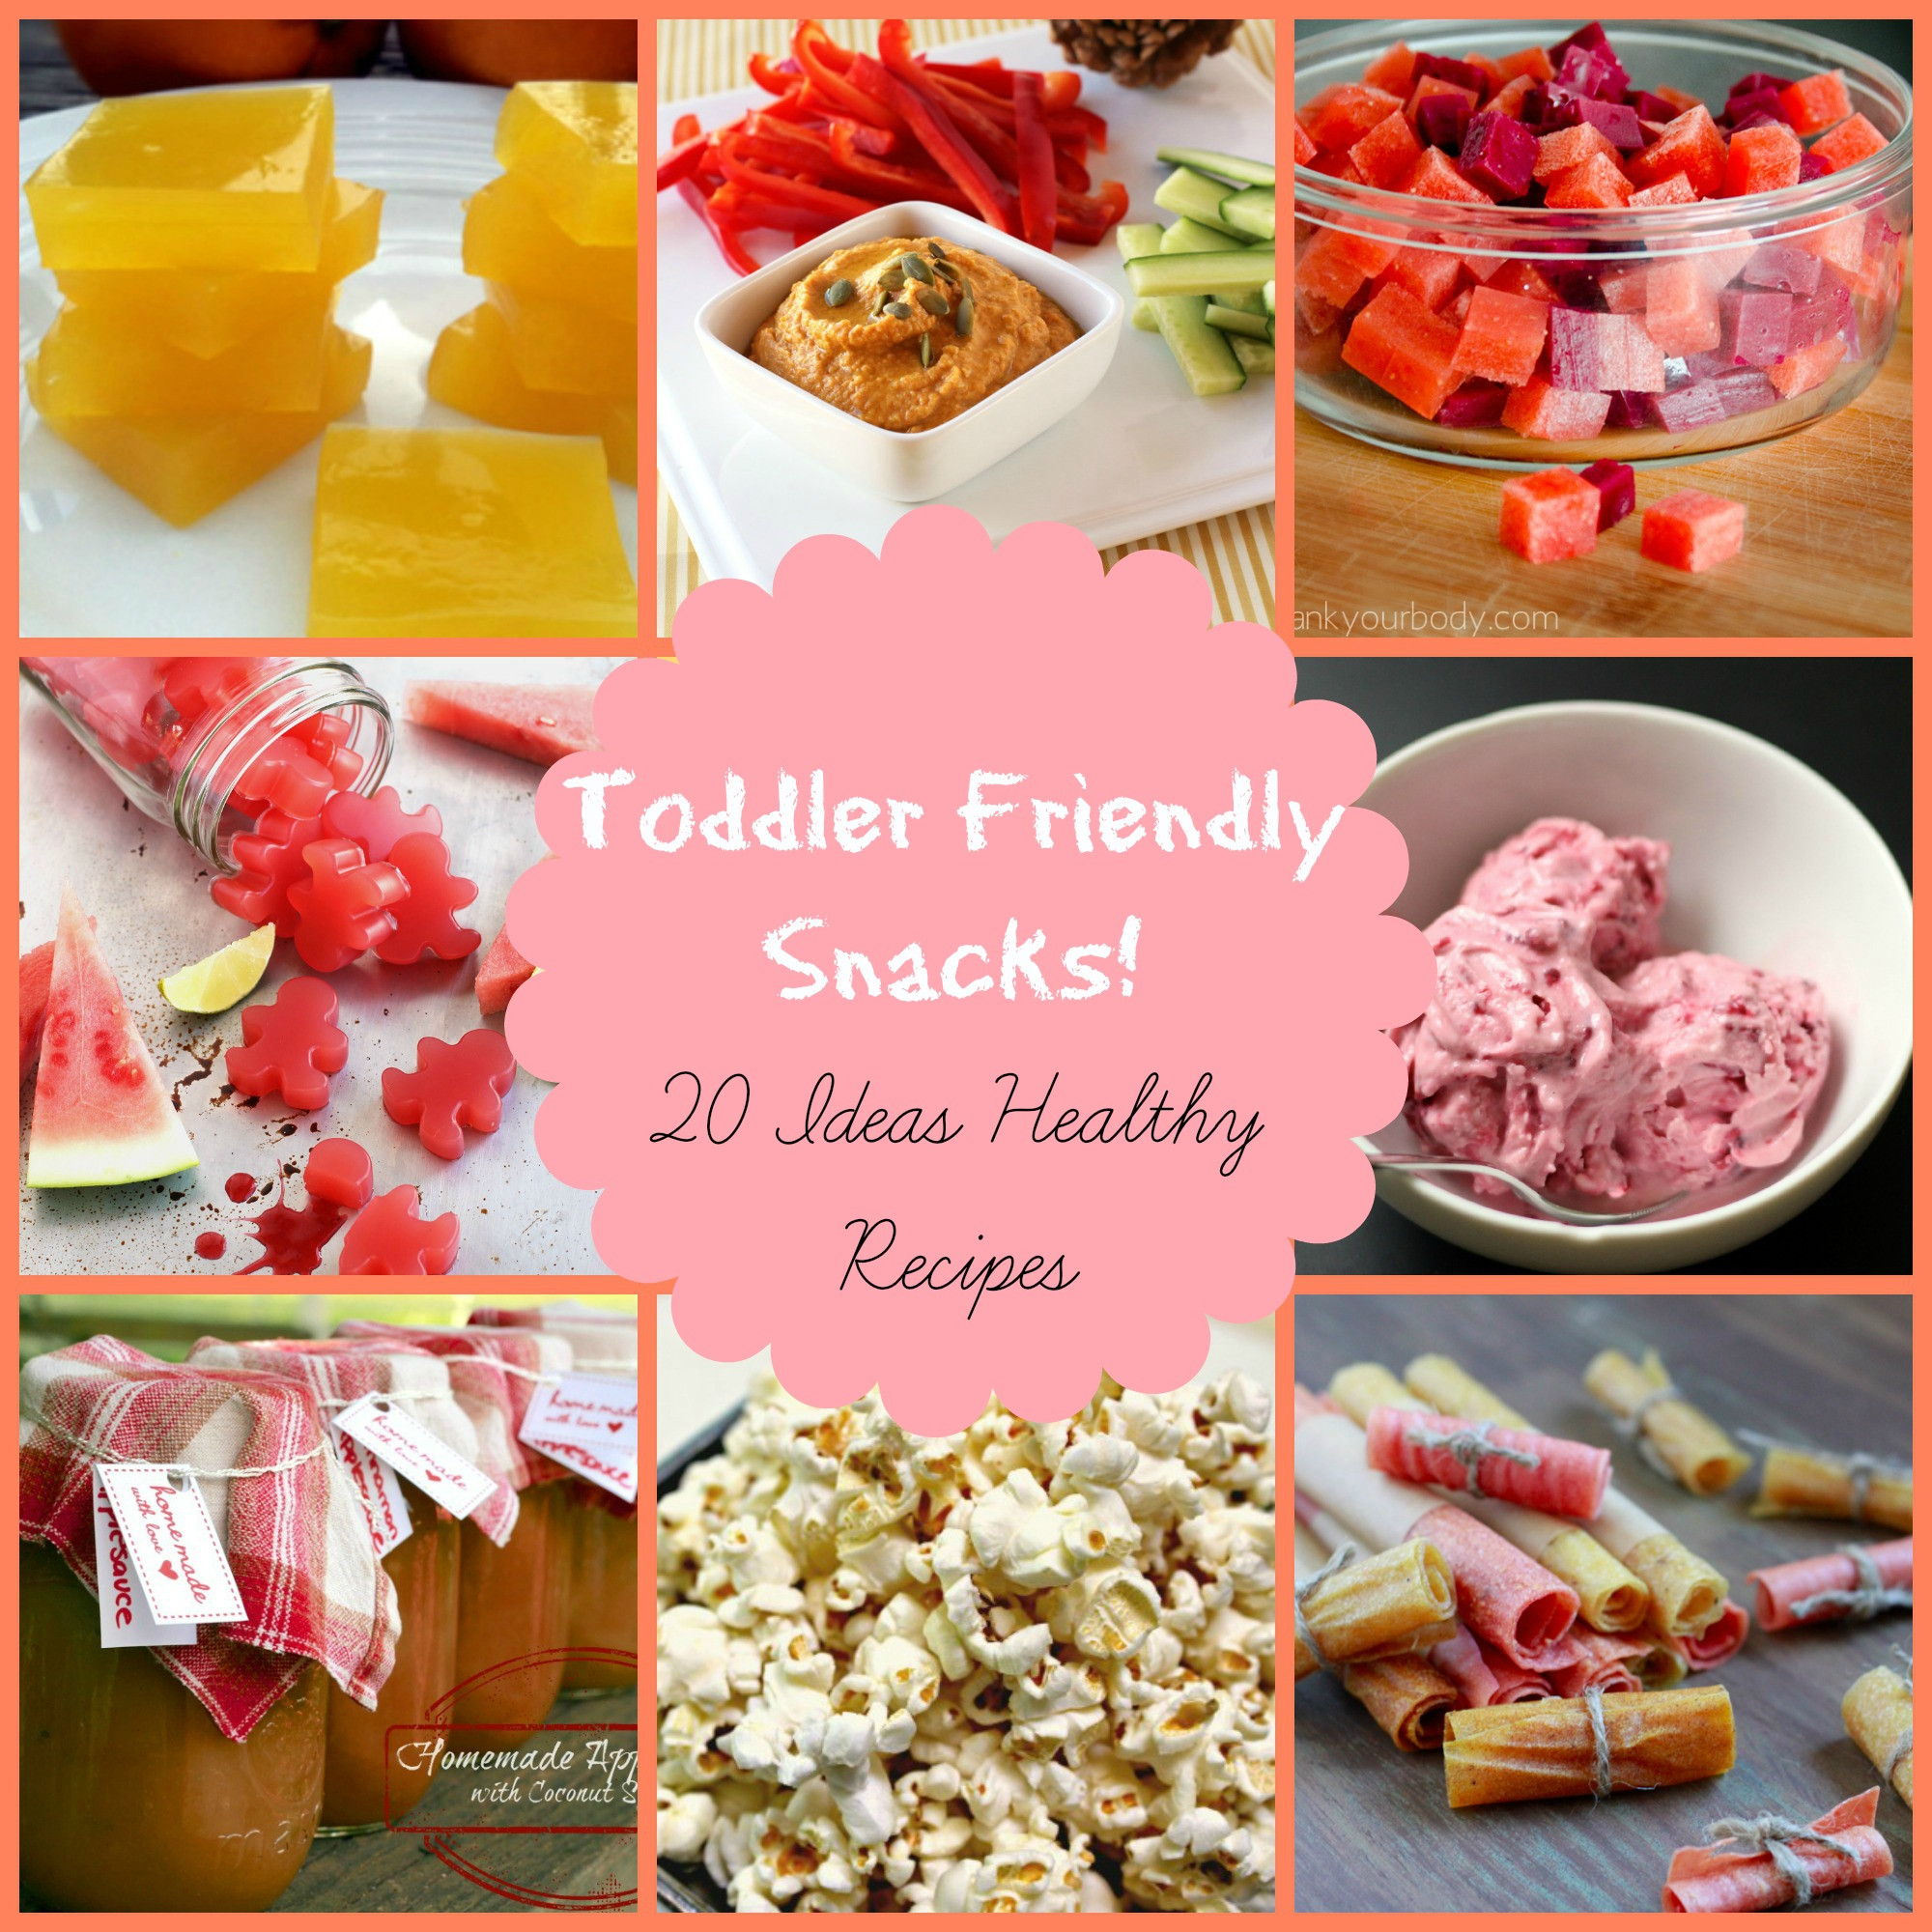 Healthy Snacks For Children  Healthy Snacks for Kids 20 toddler friendly ideas